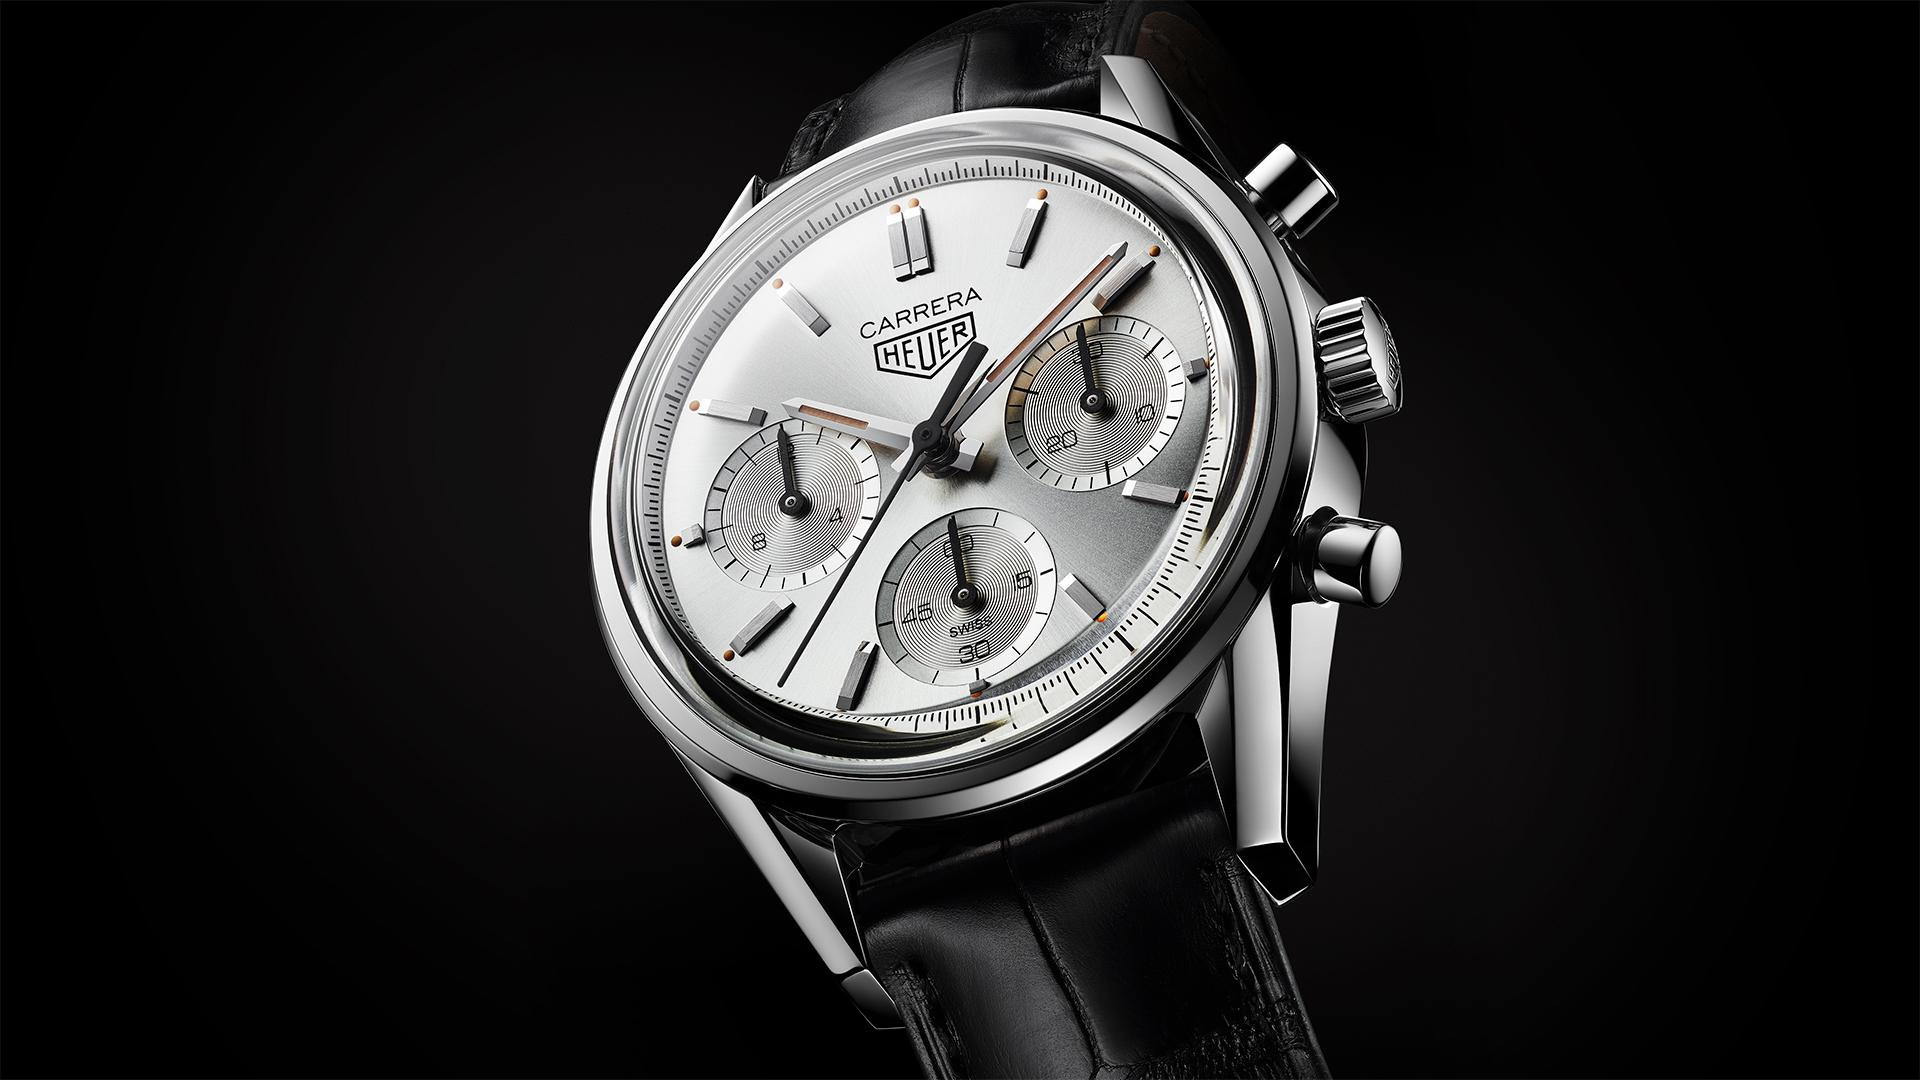 Tag Heuer Carrera 160 Years Silver Limited Edition watch